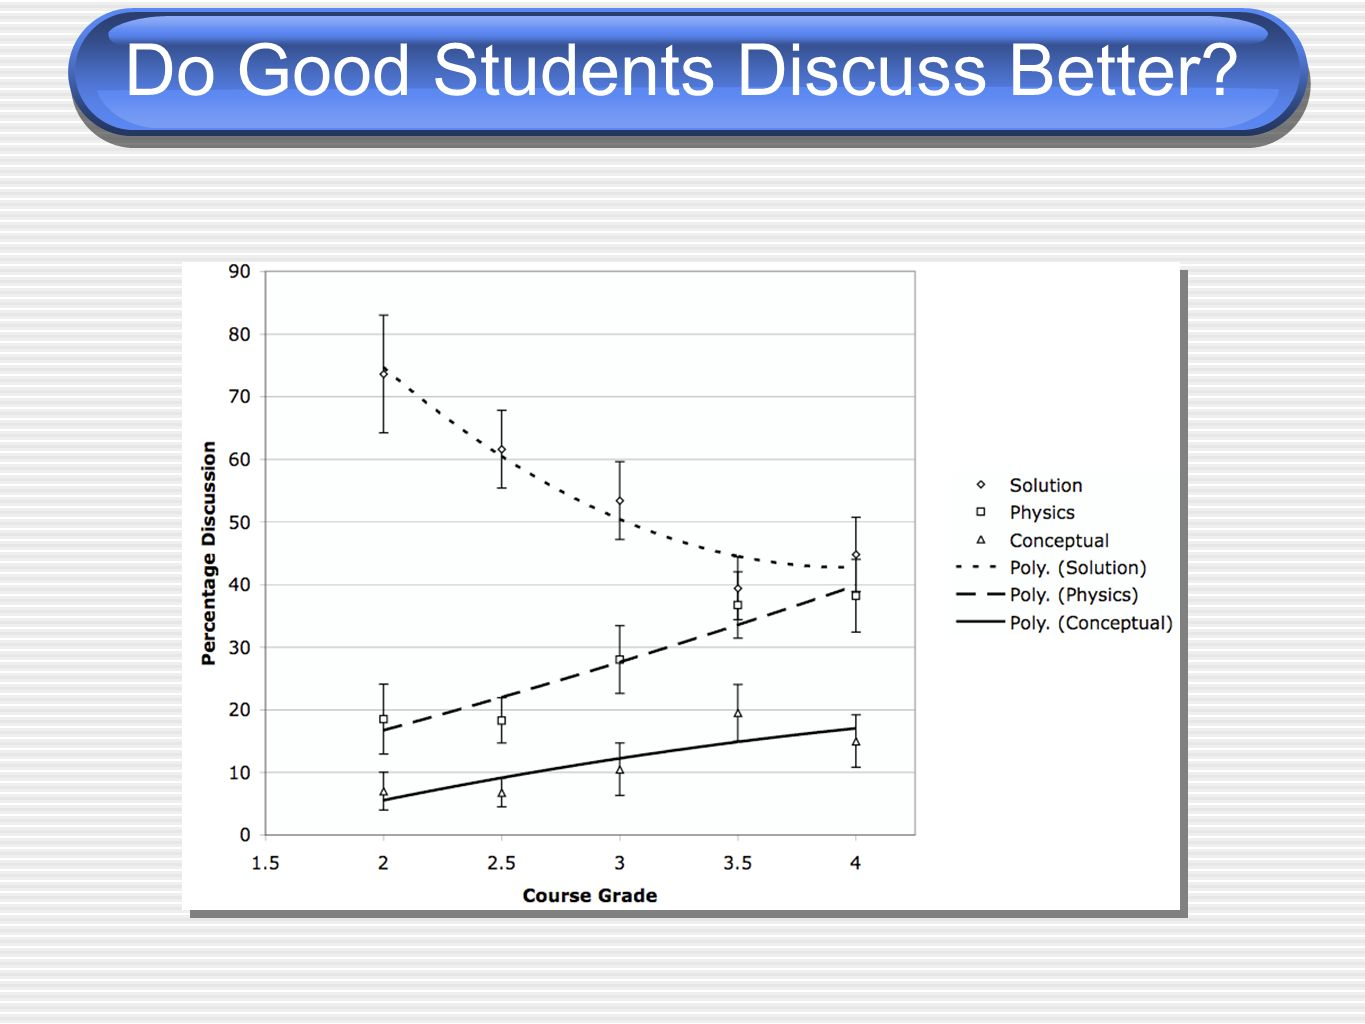 Do Good Students Discuss Better